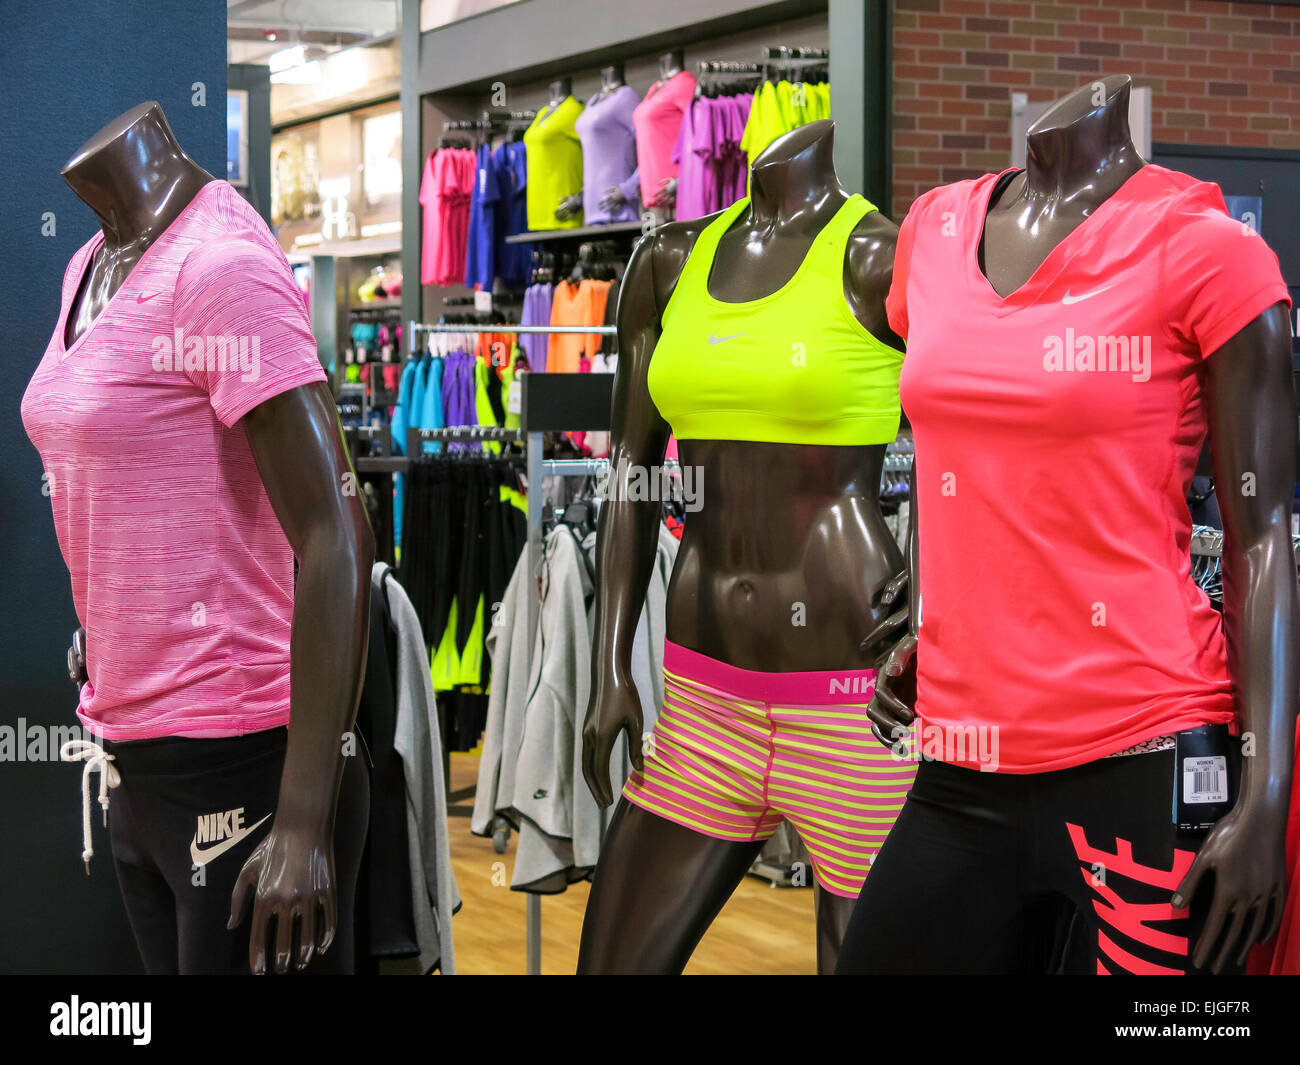 Dick's Sporting Goods in Tampa, Florida, USA - Stock Image